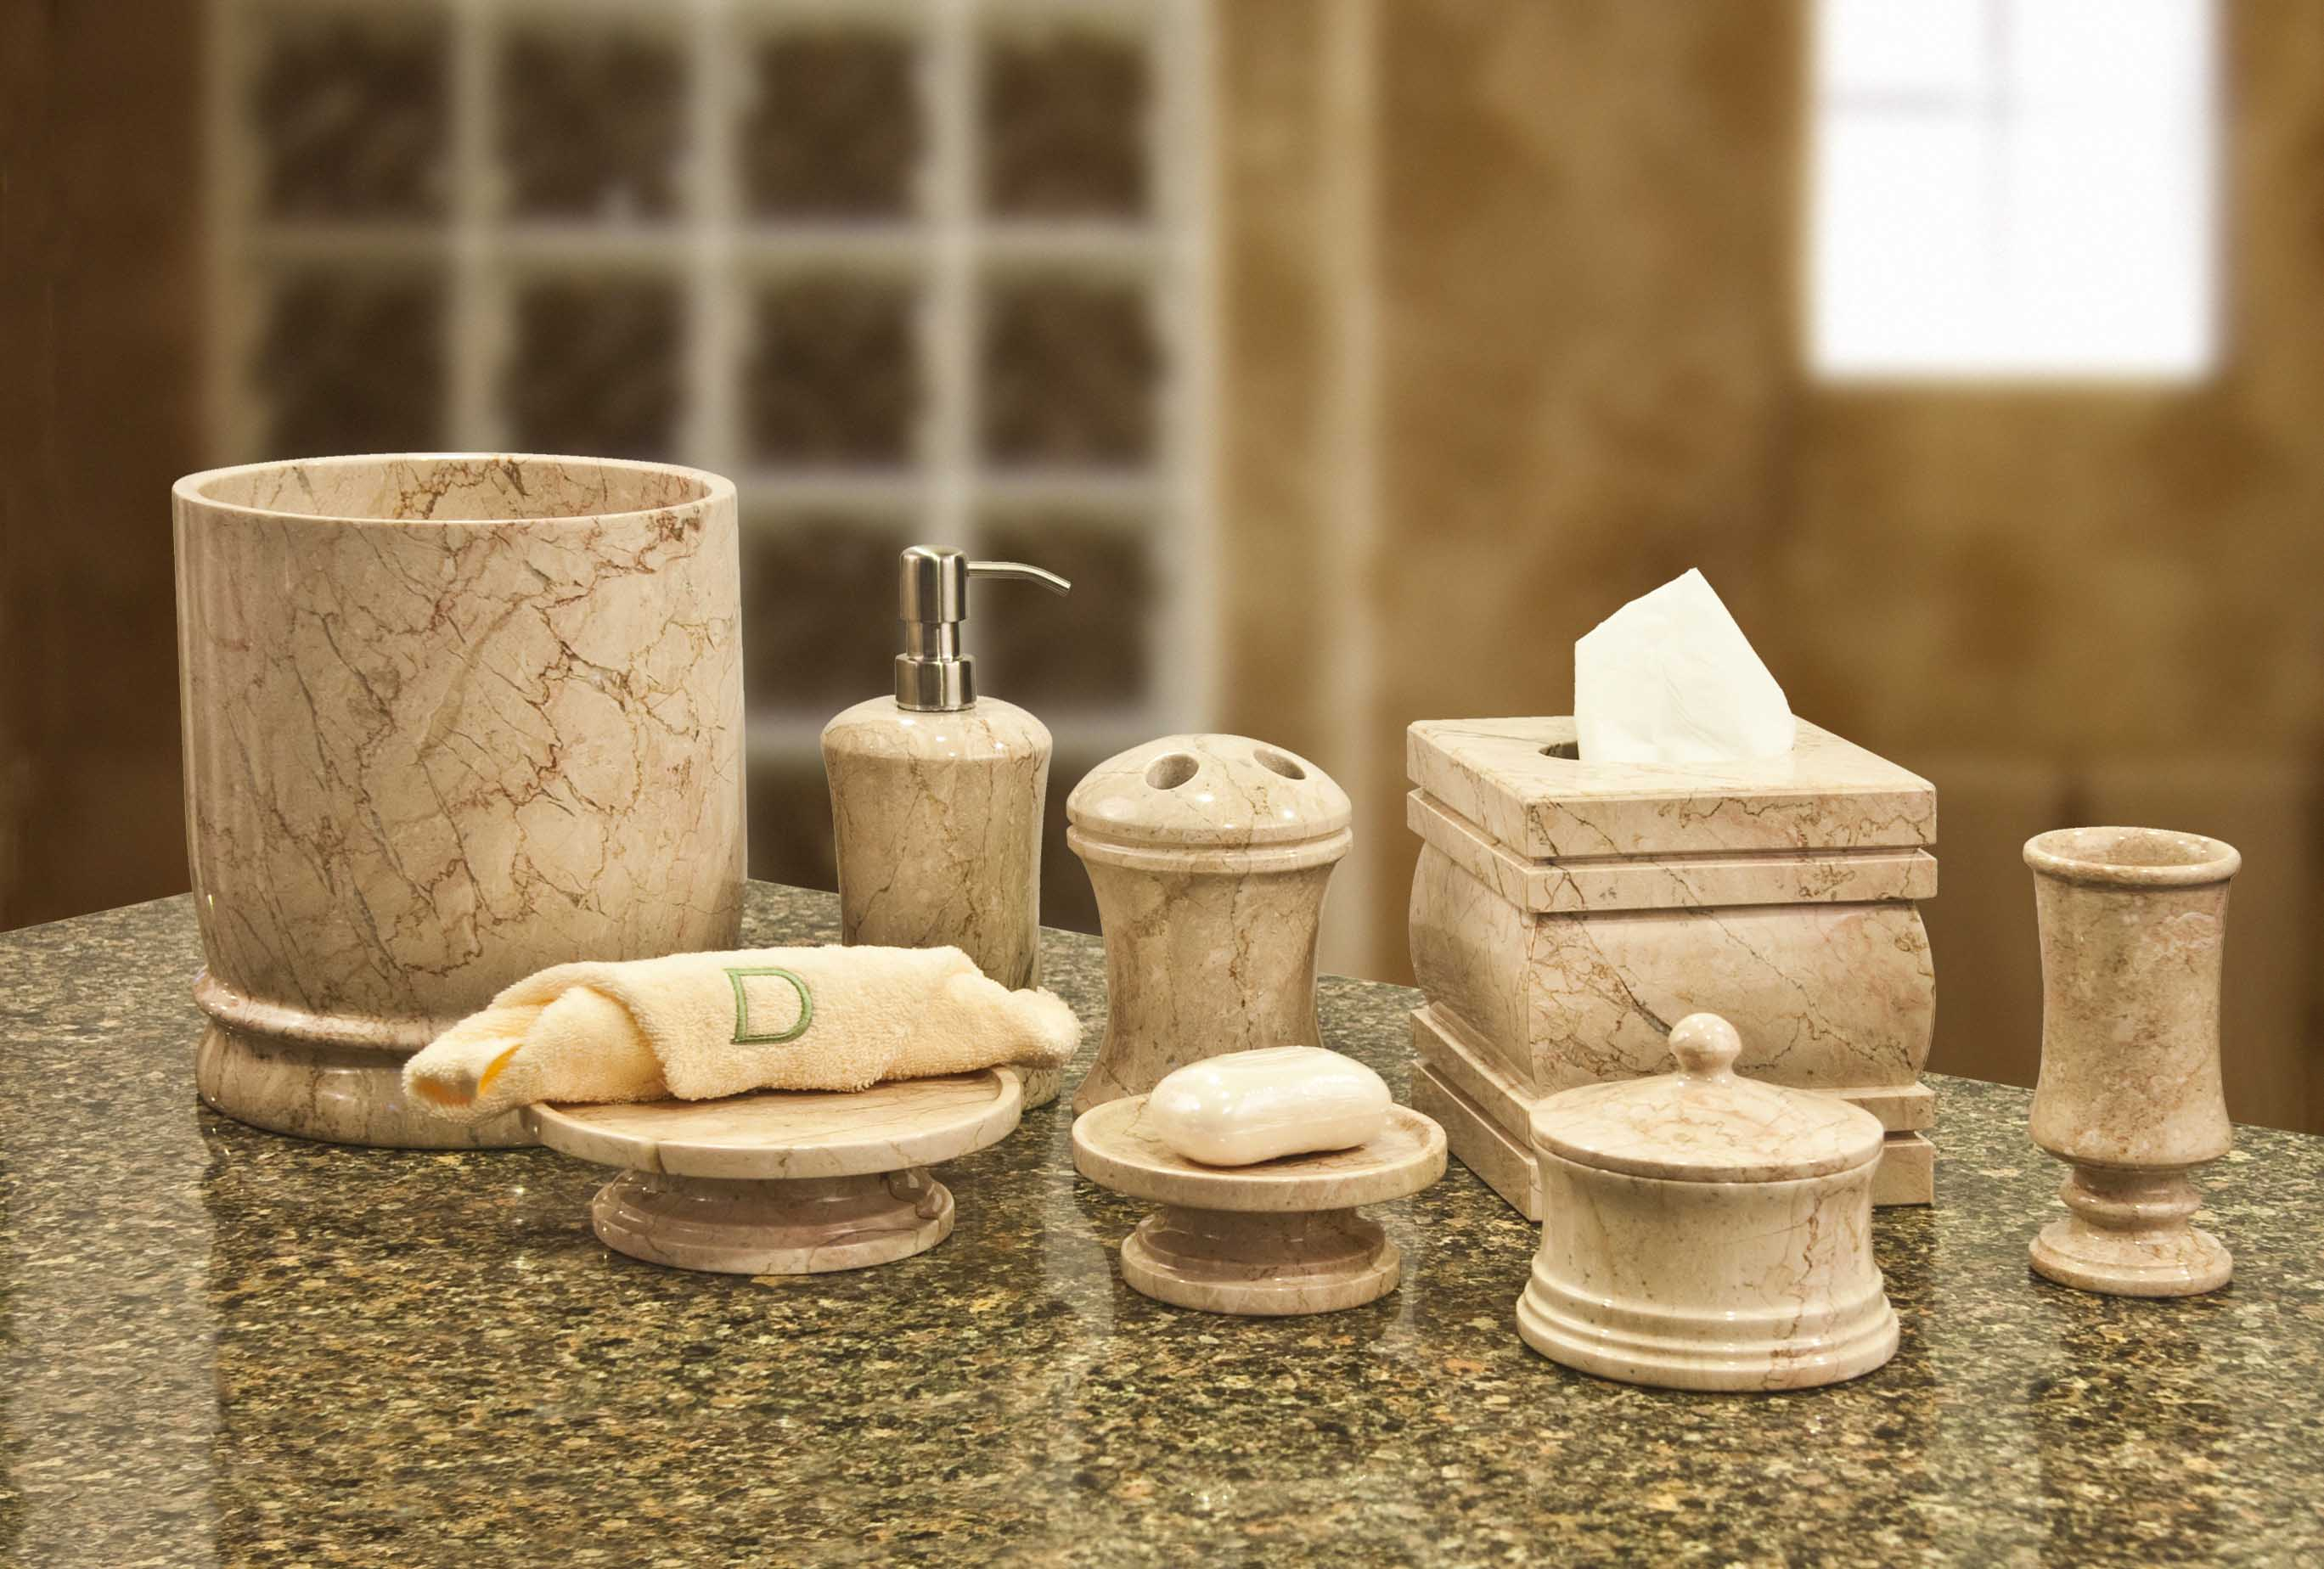 Get a new look of bathroom with elegant   bathroom decor sets